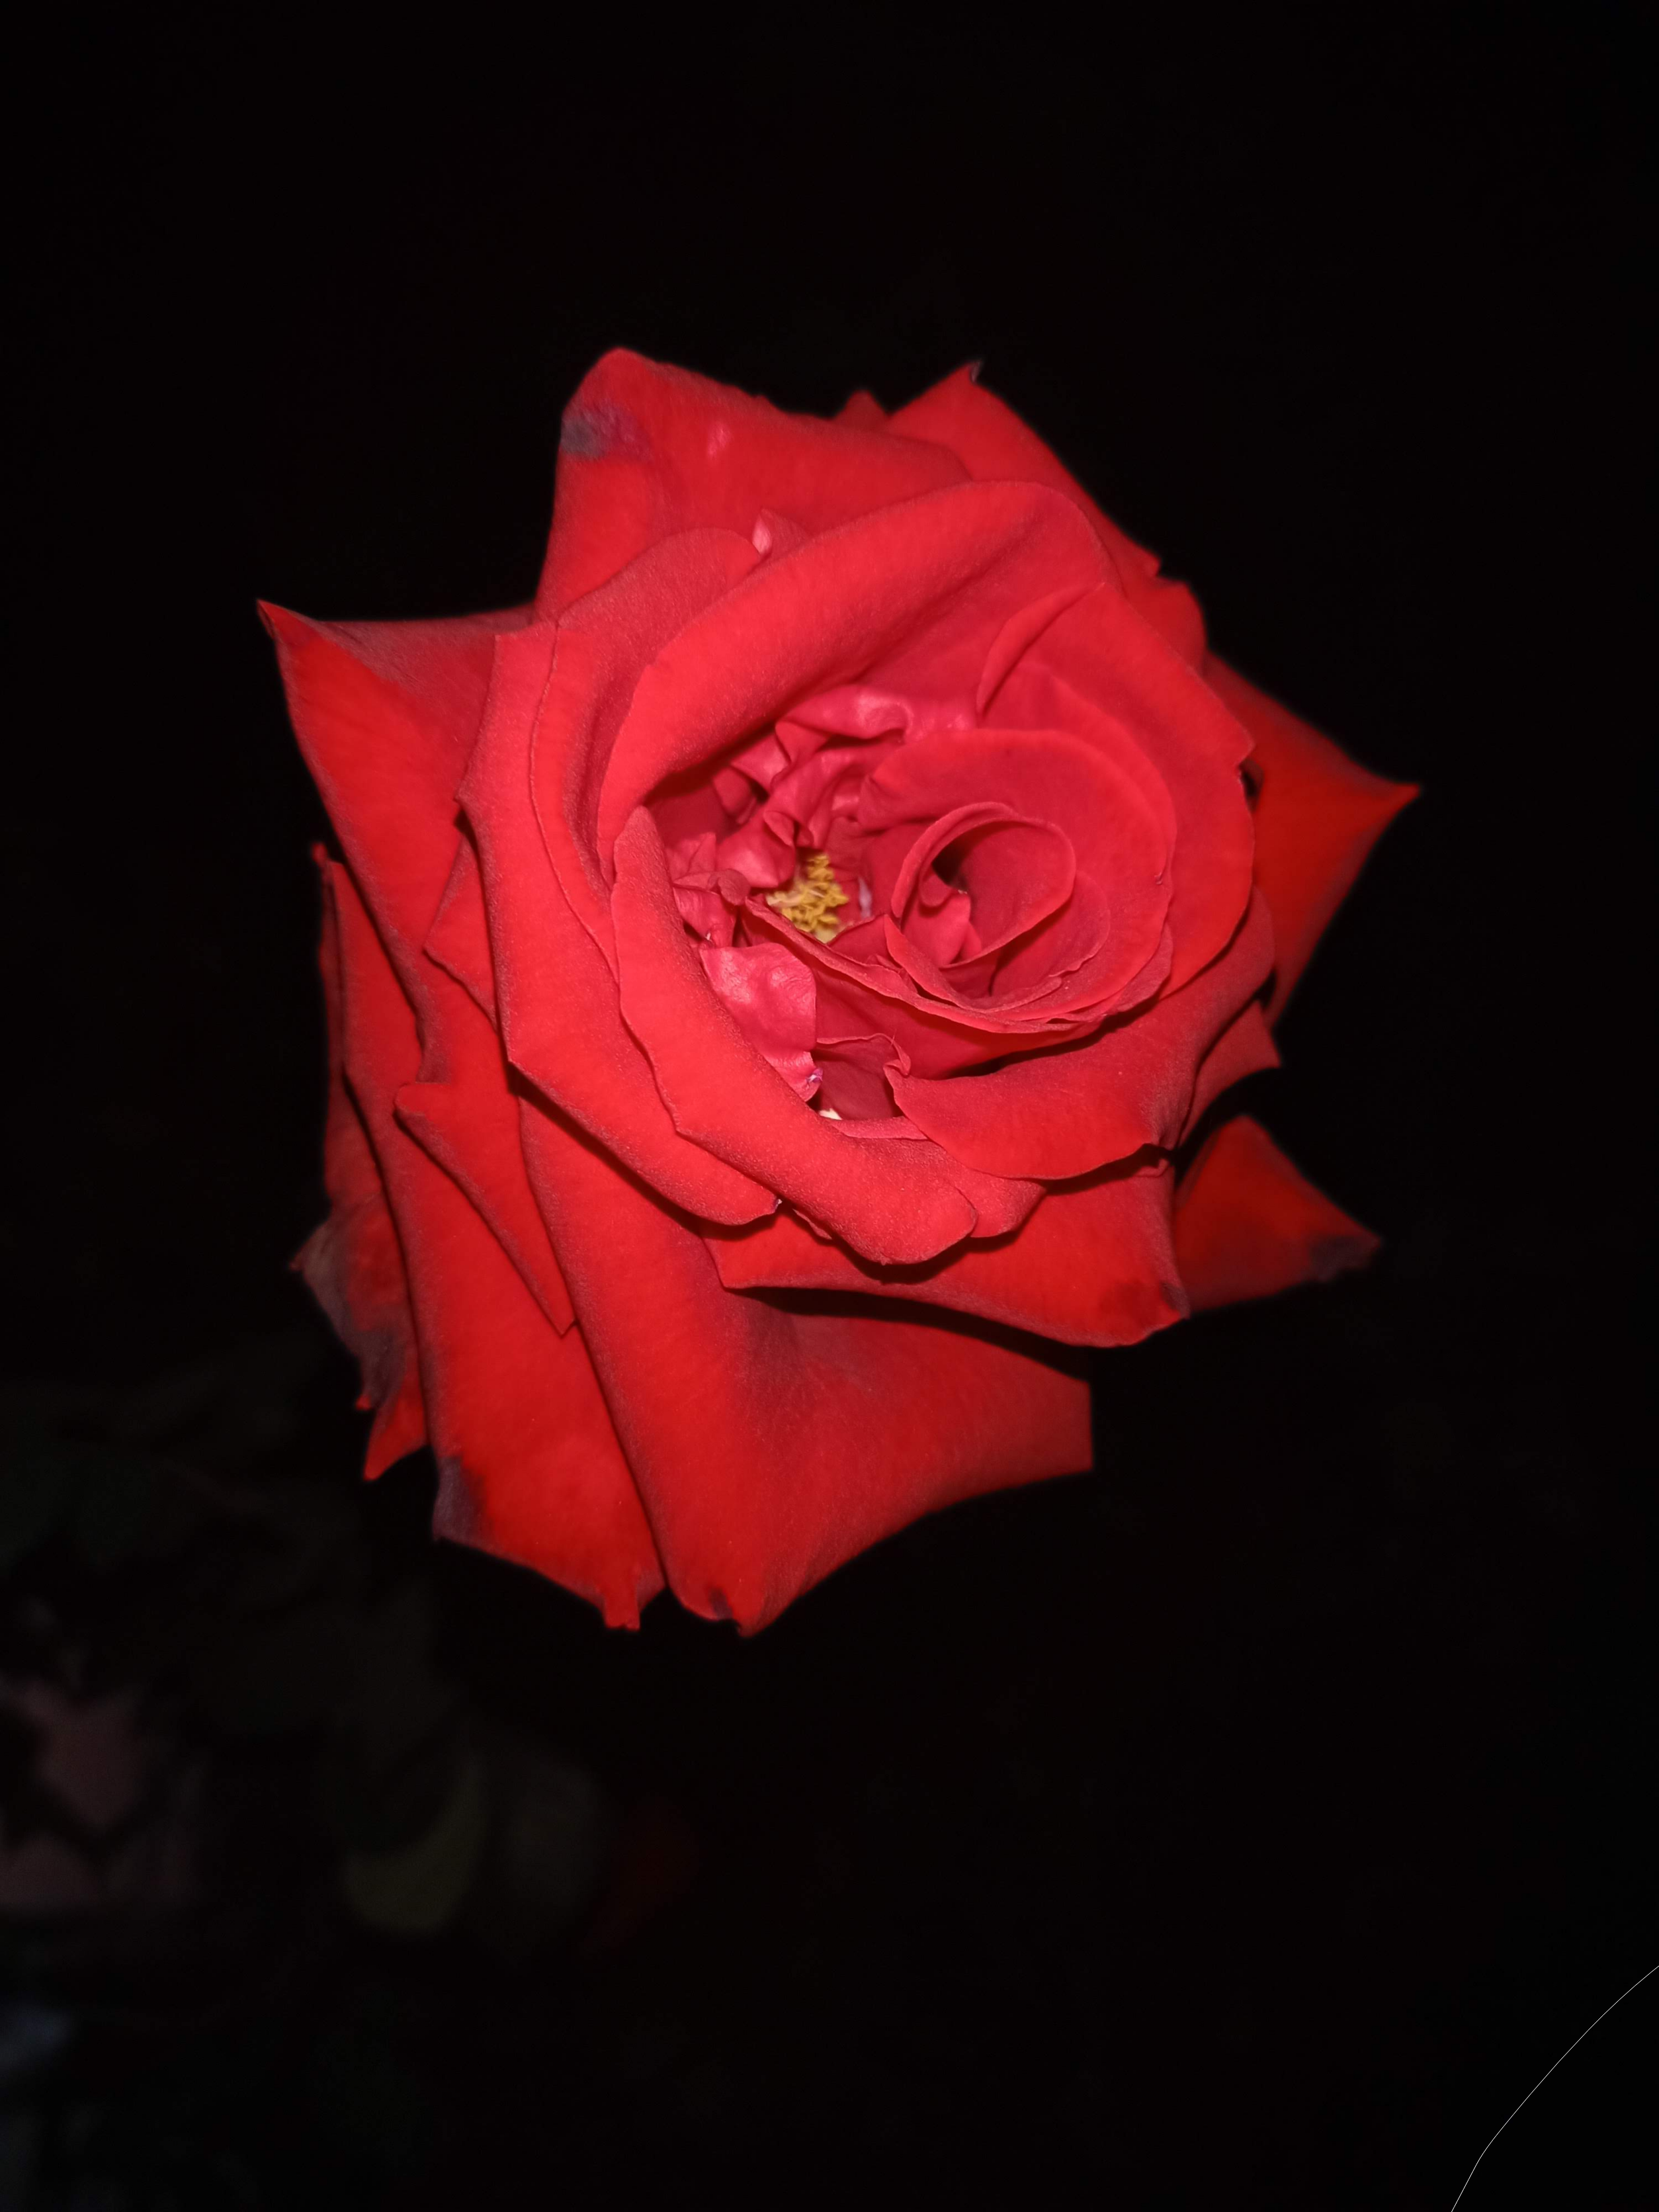 Red rose on Focus